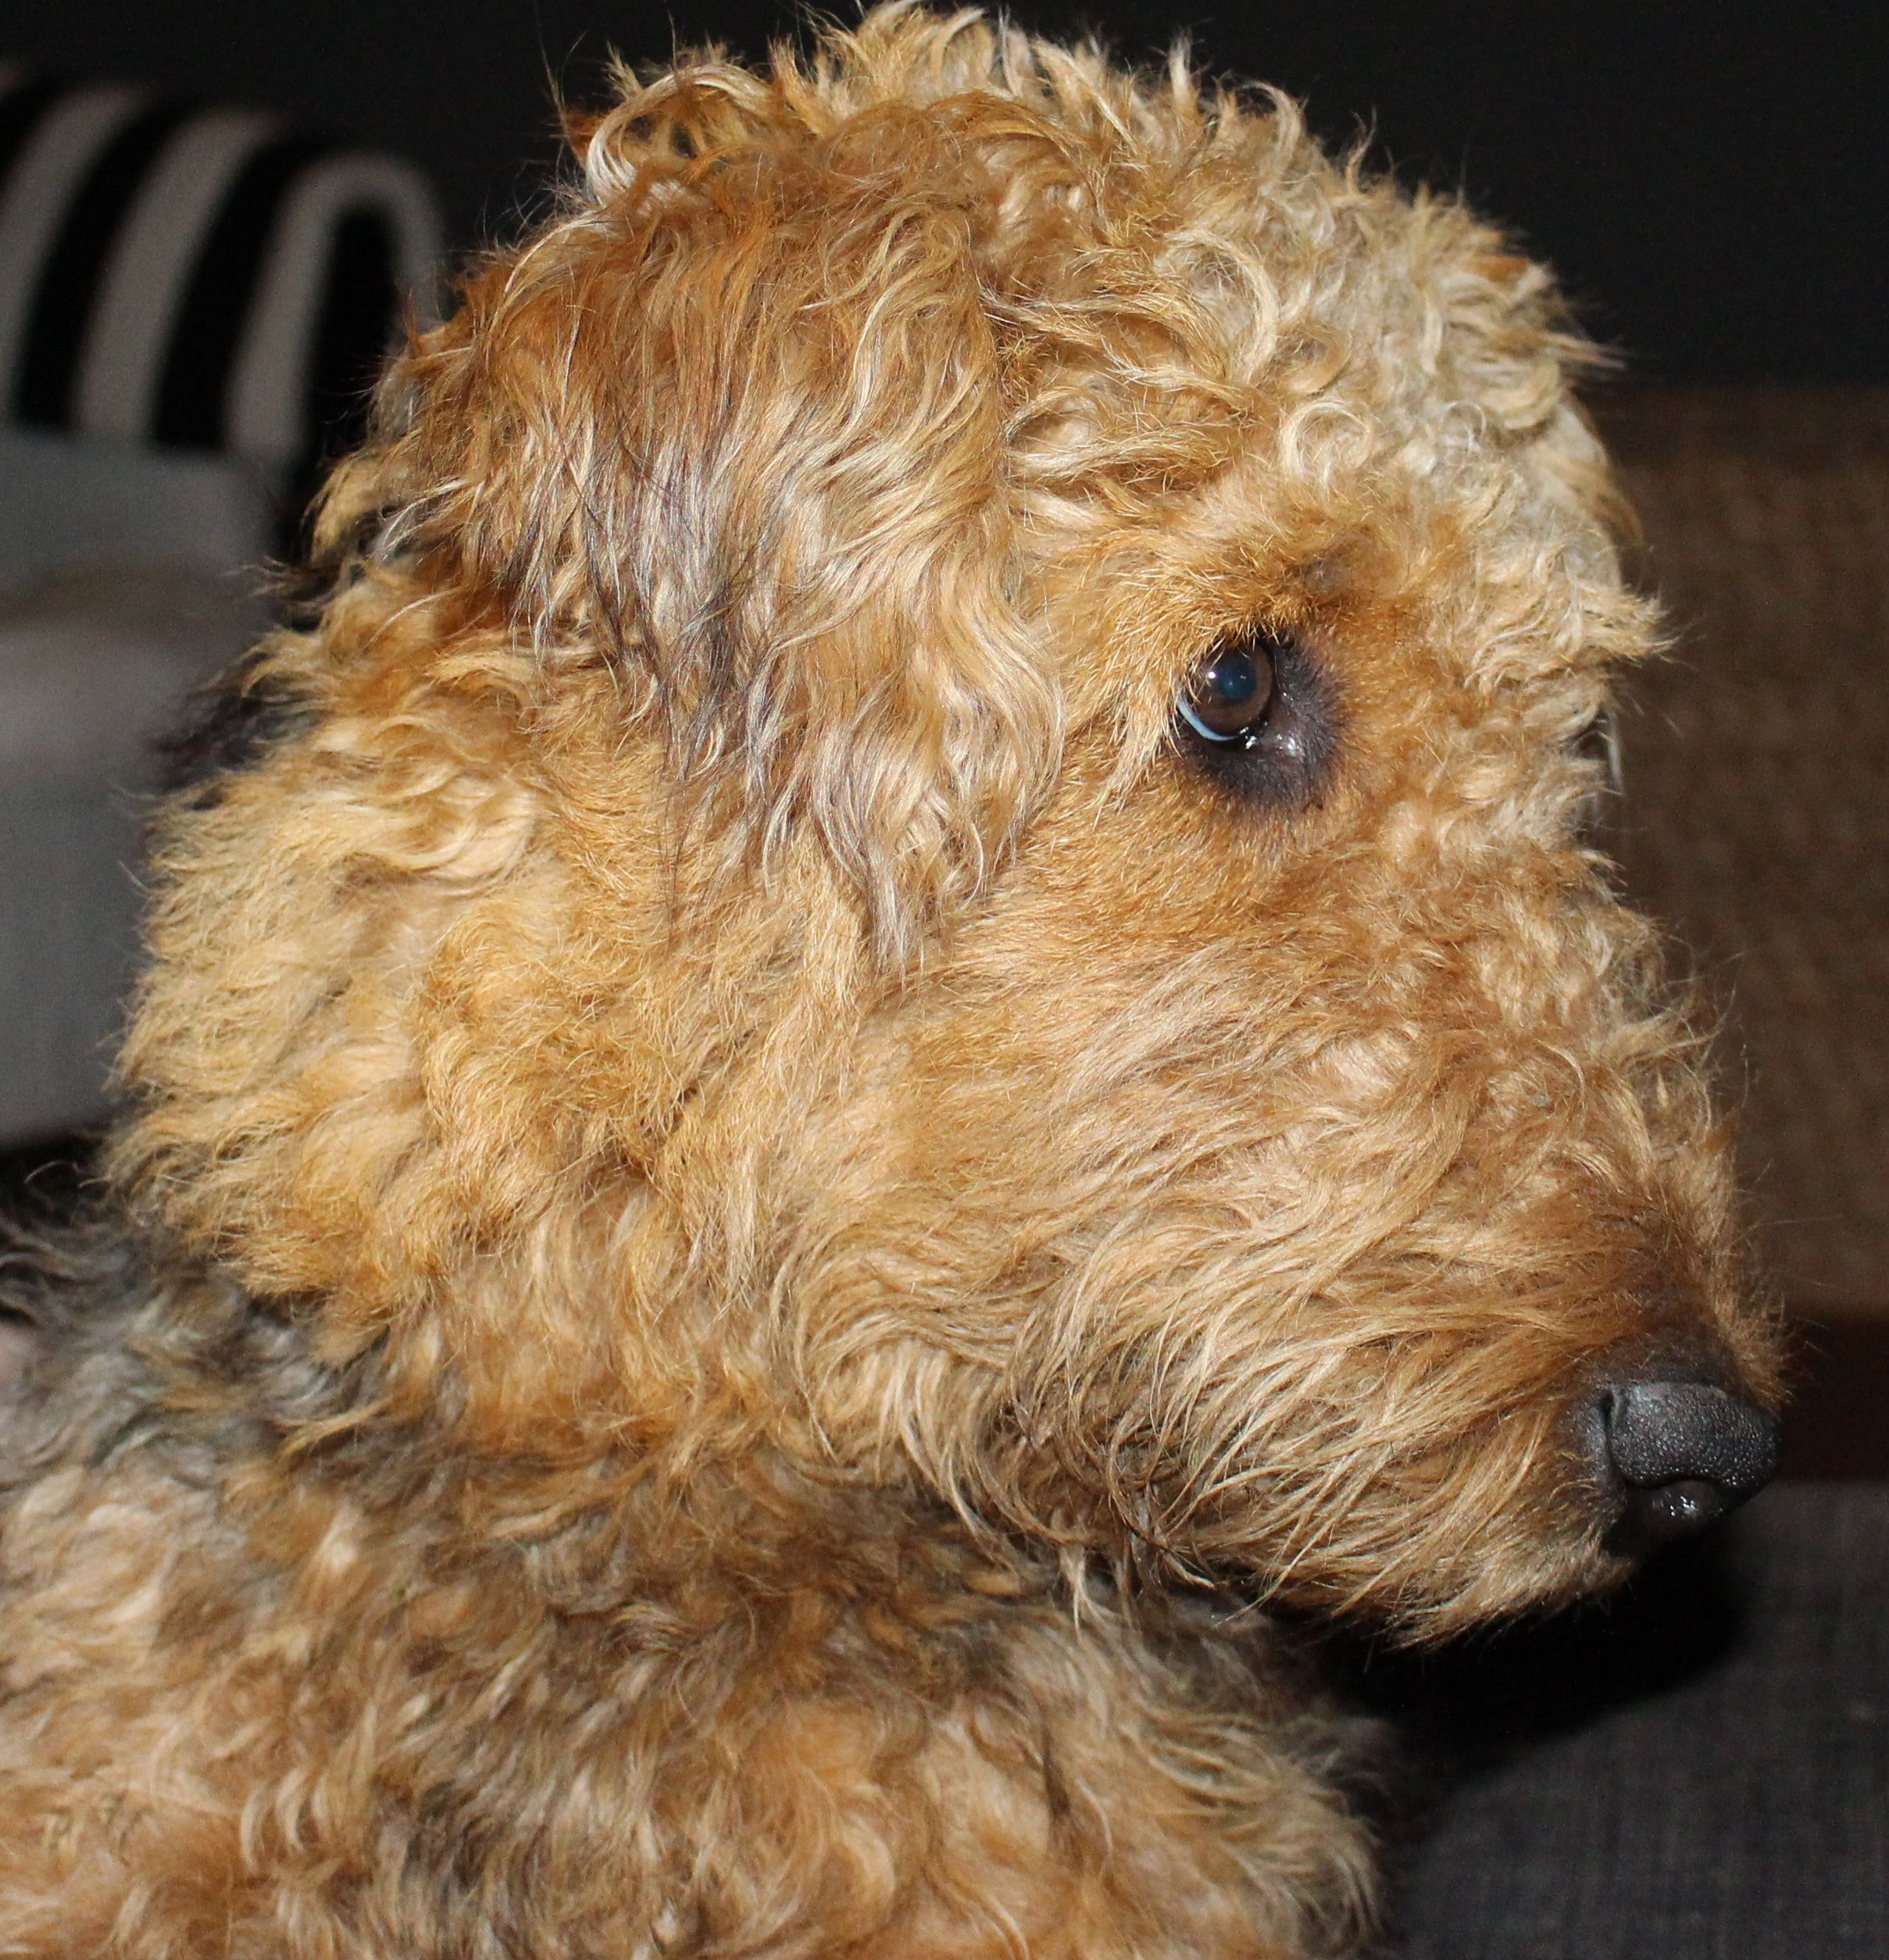 Pin by Pamela Jean on AIREDALES Airedale terrier, Dogs